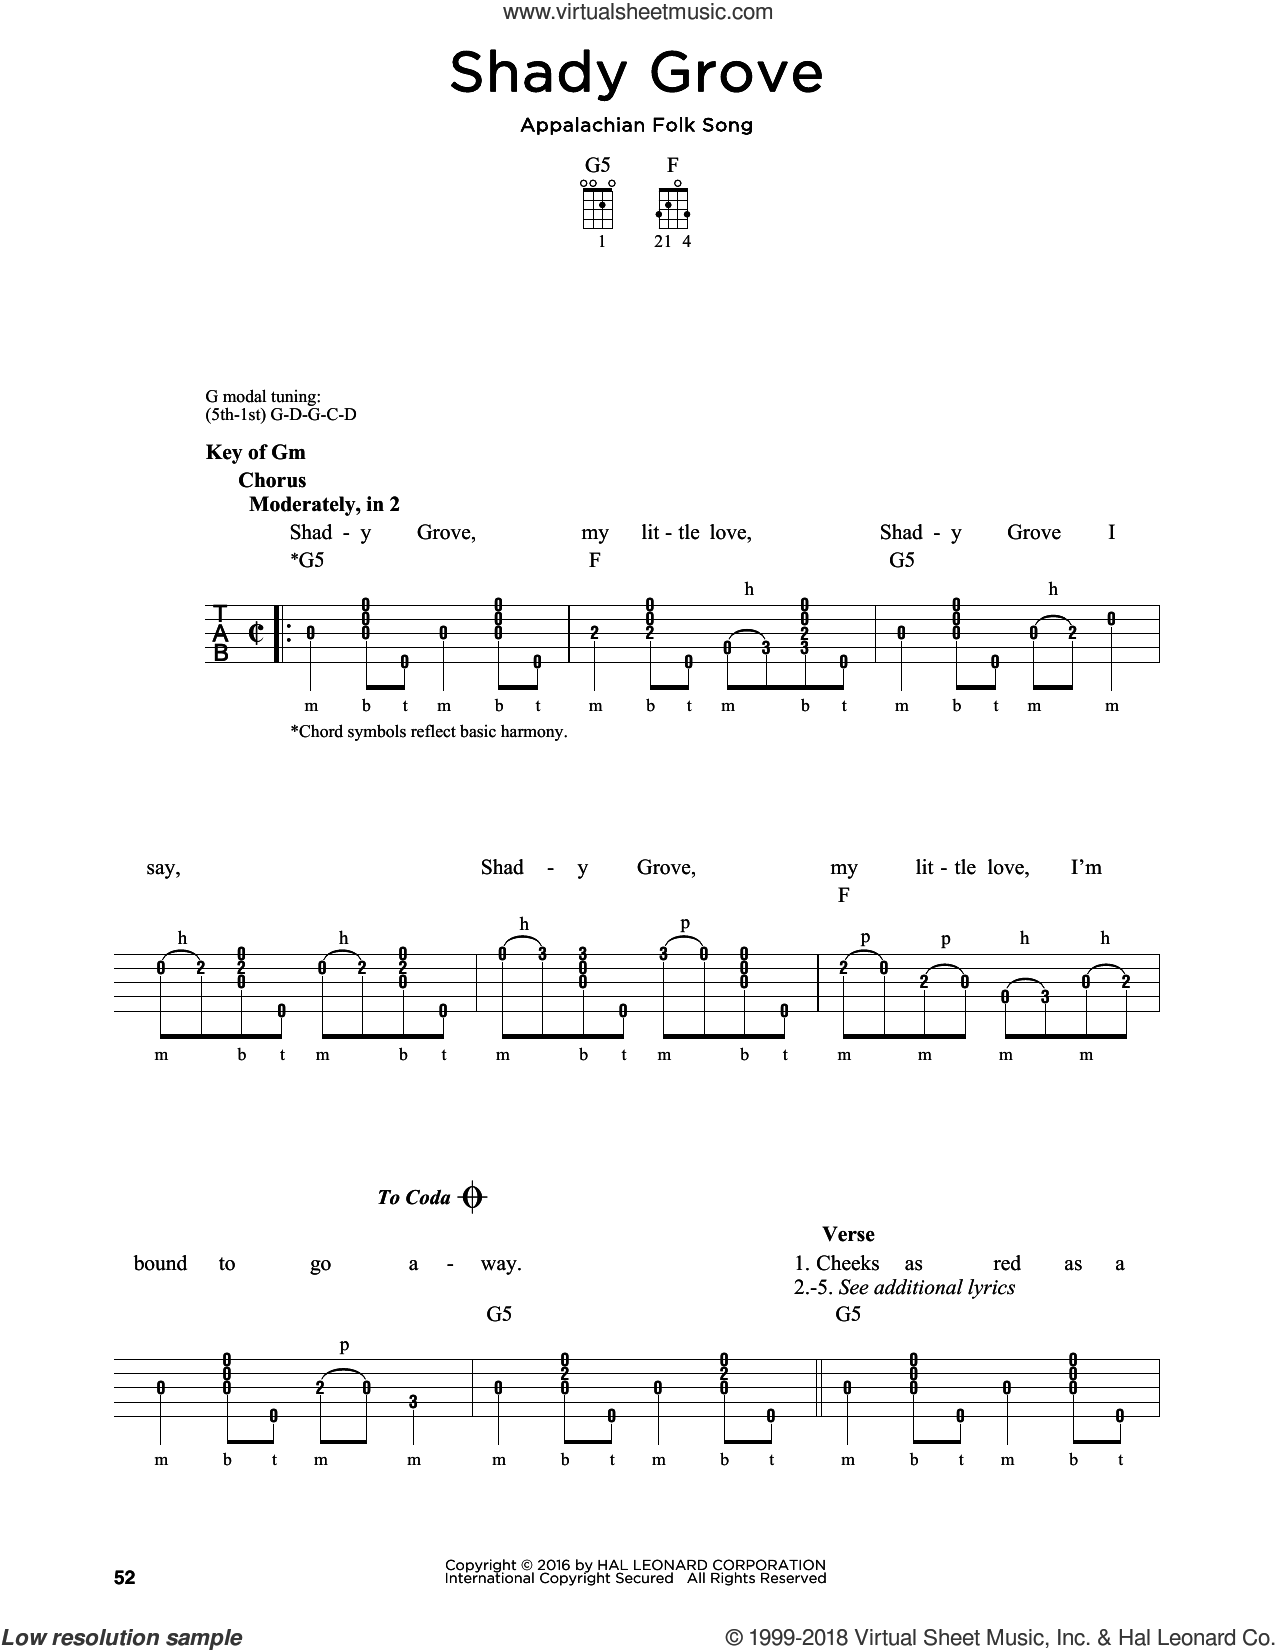 Song shady grove sheet music for banjo solo for Shady grove